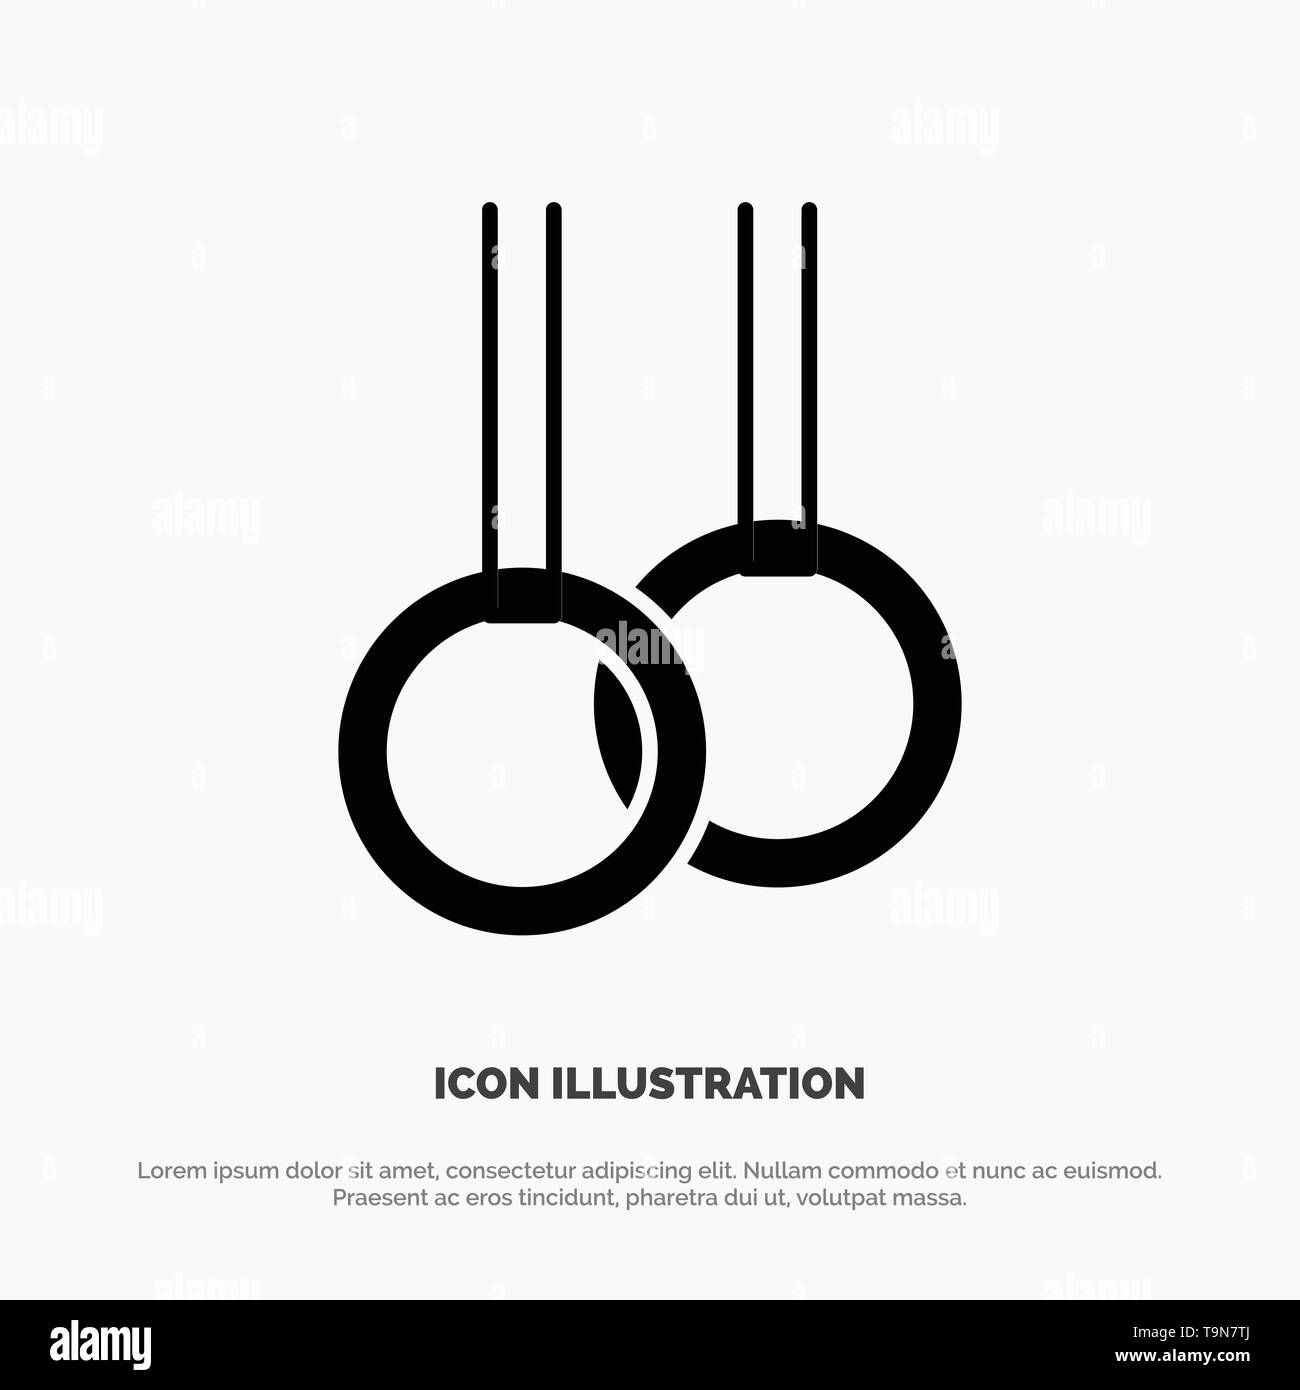 Athletic, Gymnastics, Rings solid Glyph Icon vector - Stock Image